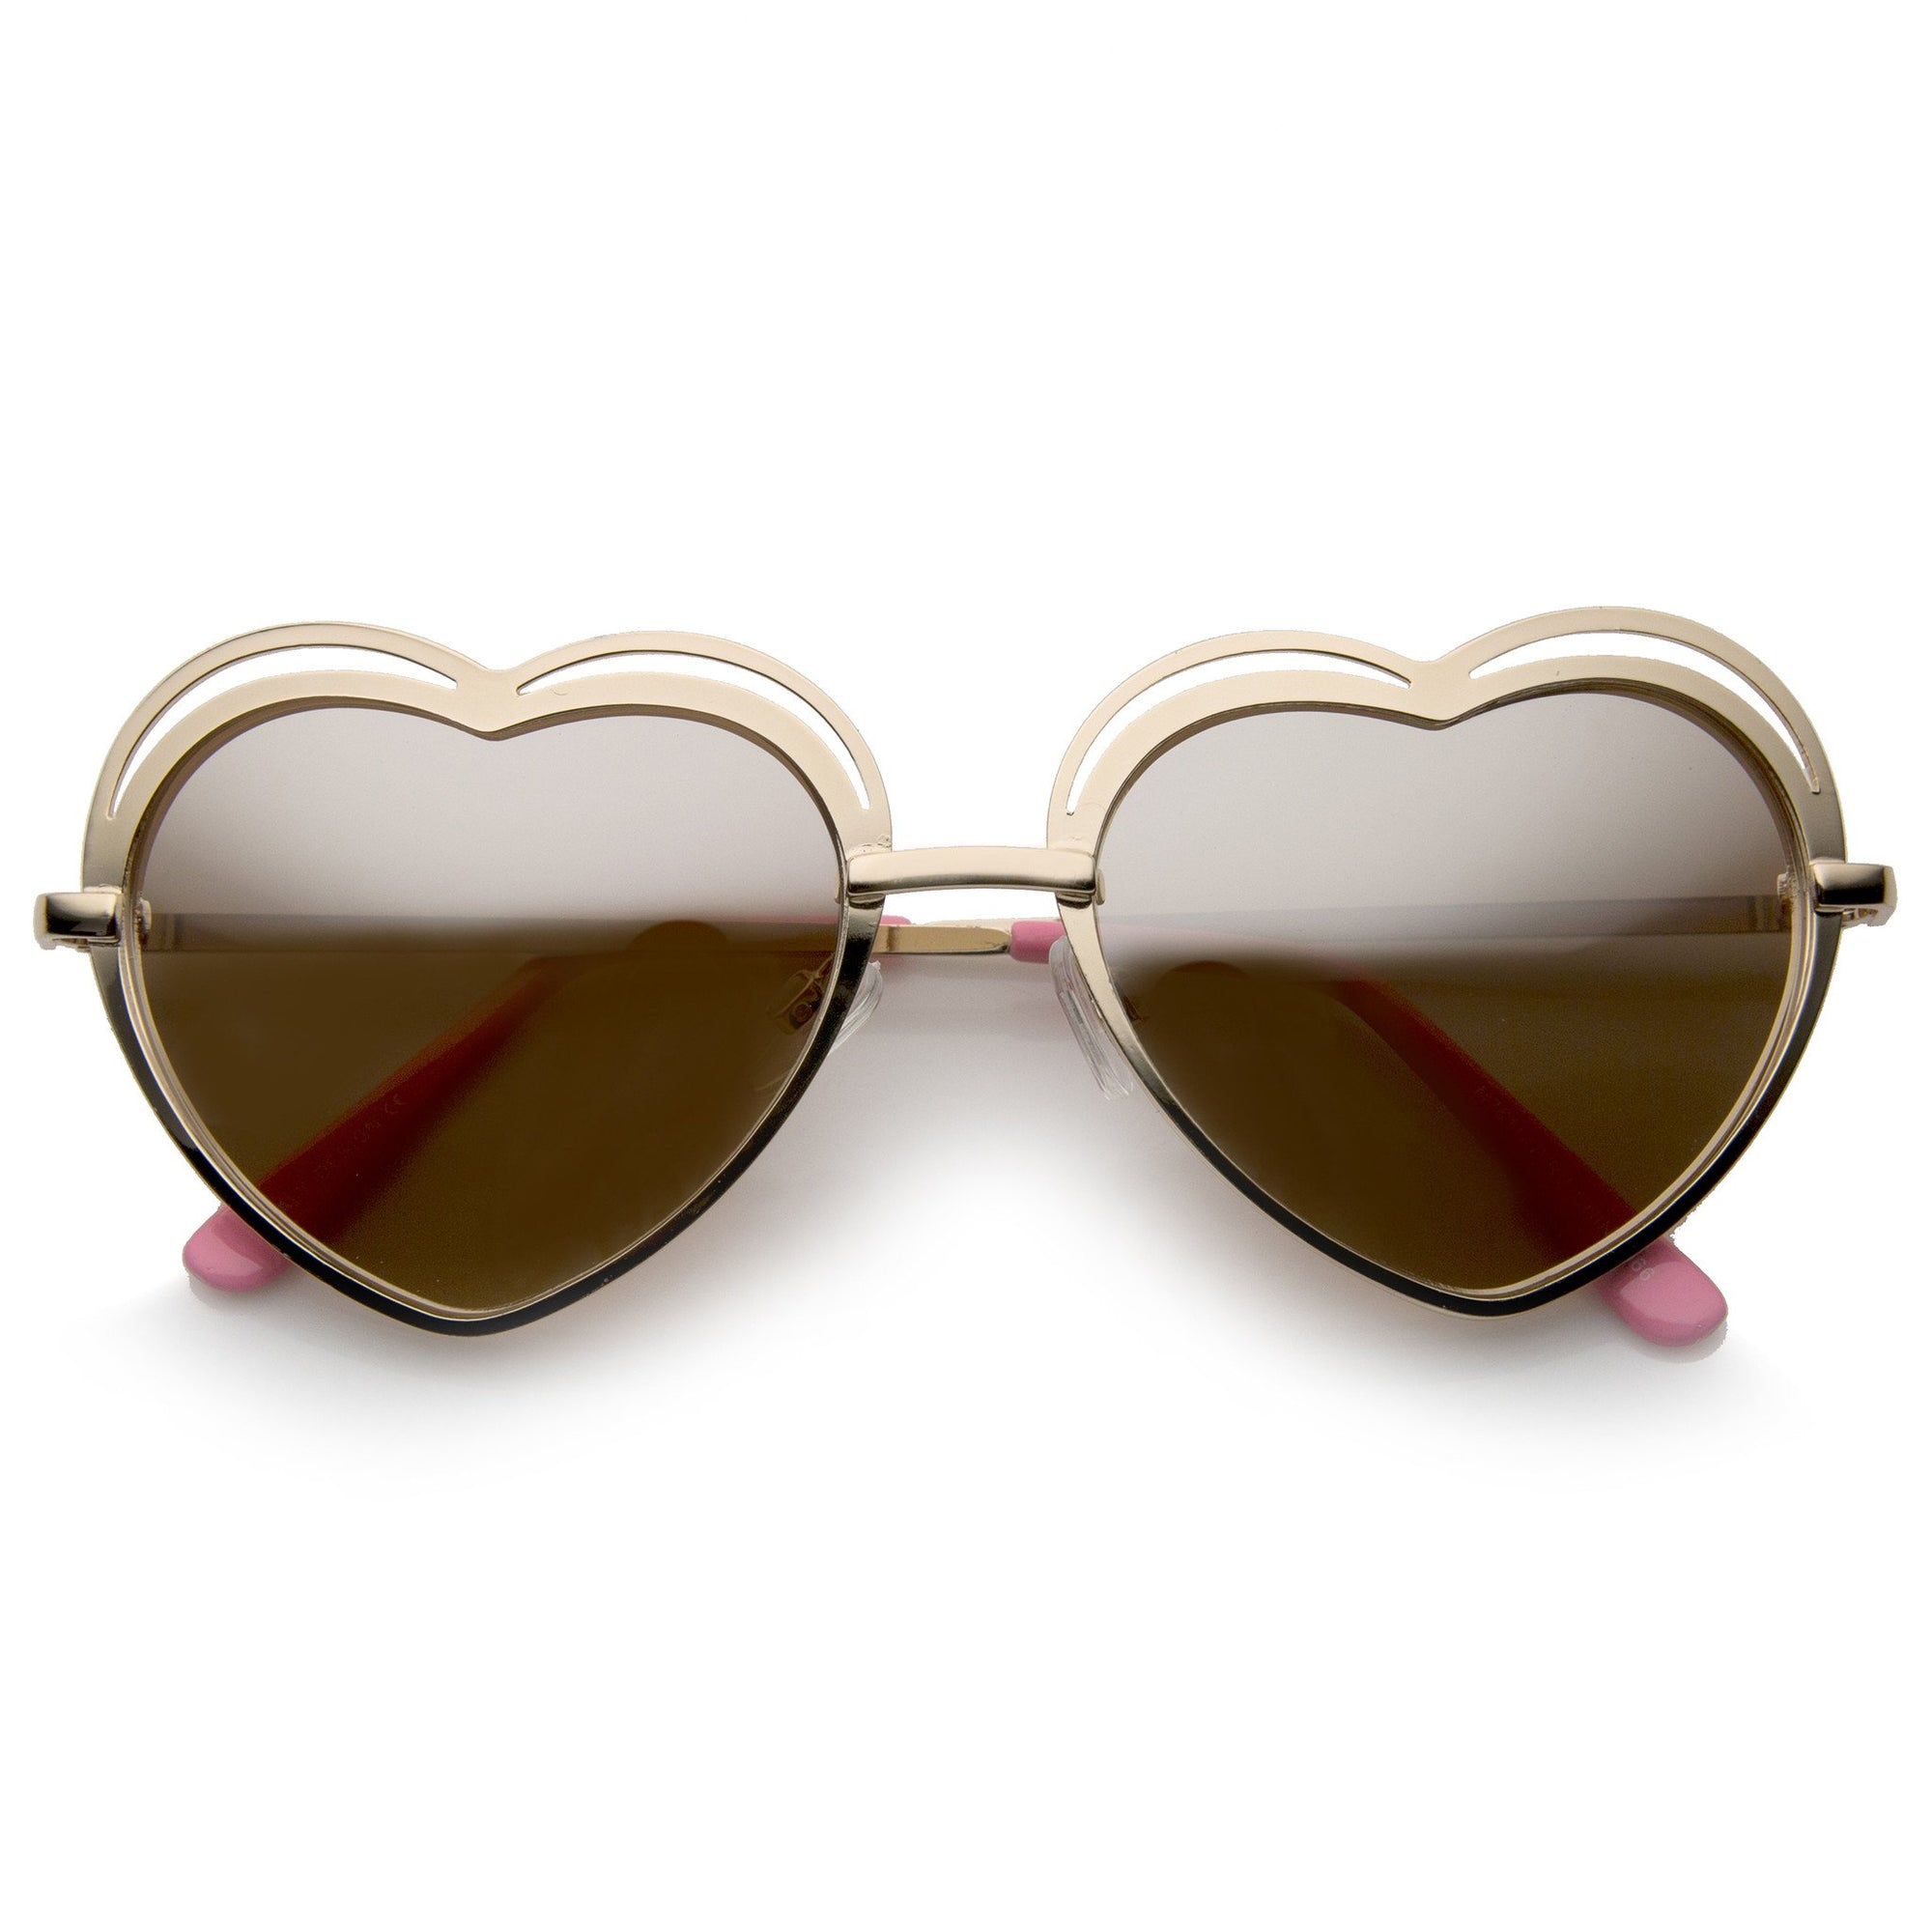 26c354bf2ac ... Heart Shape Laser Cut Sunglasses A299 · Gold Pink Mirror